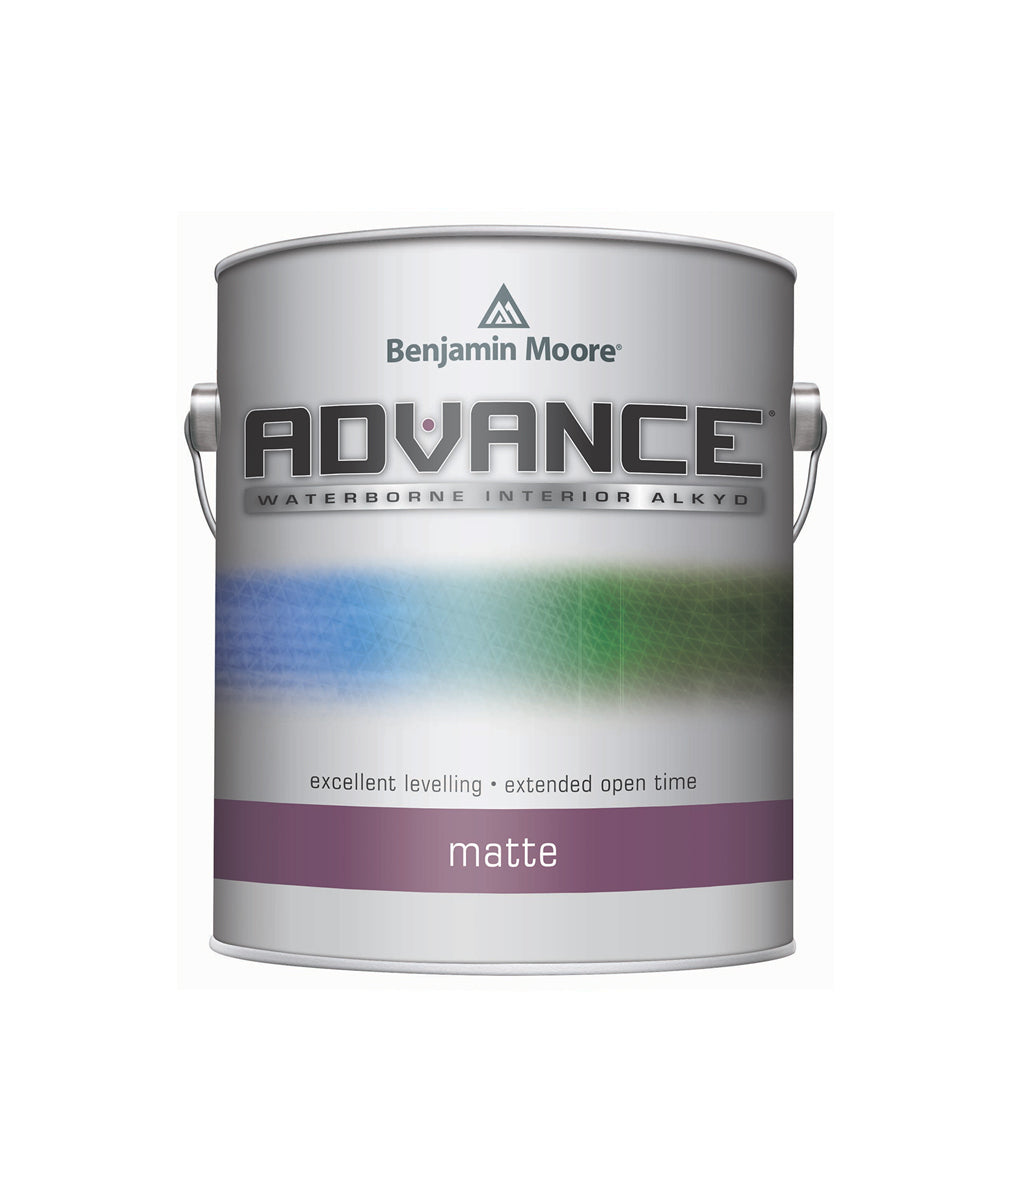 Bm advance waterborne alkyd paint colorize colorize inc - Advance waterborne interior alkyd paint ...